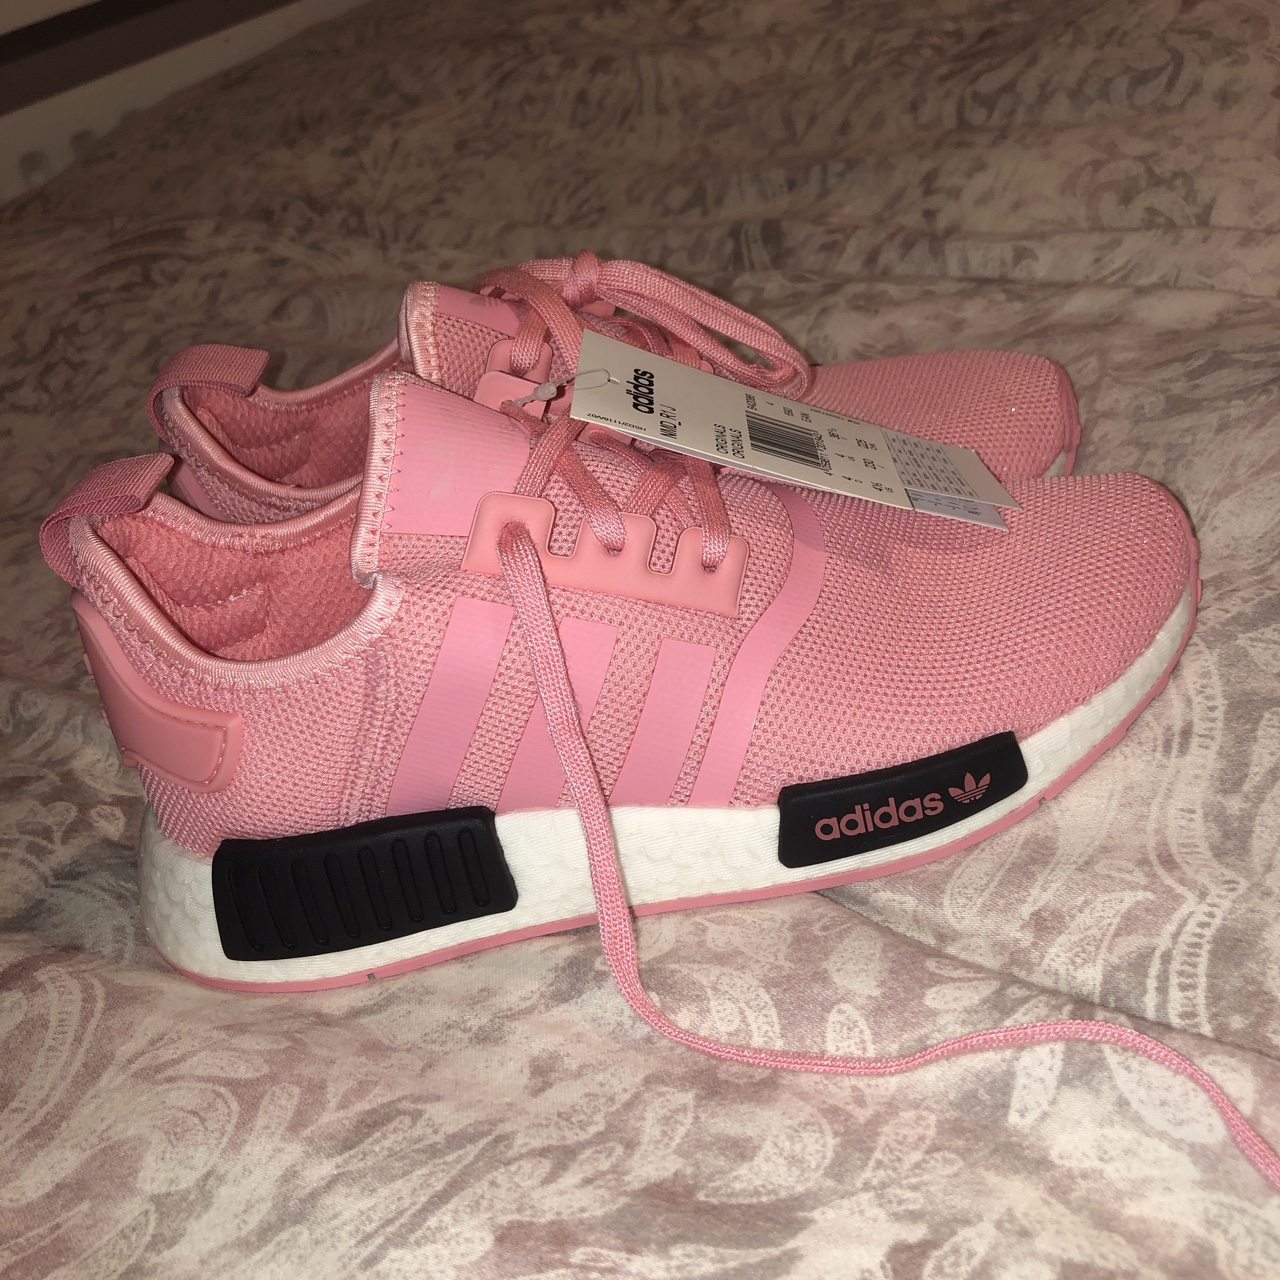 adidas originals nmd r1 pink and black